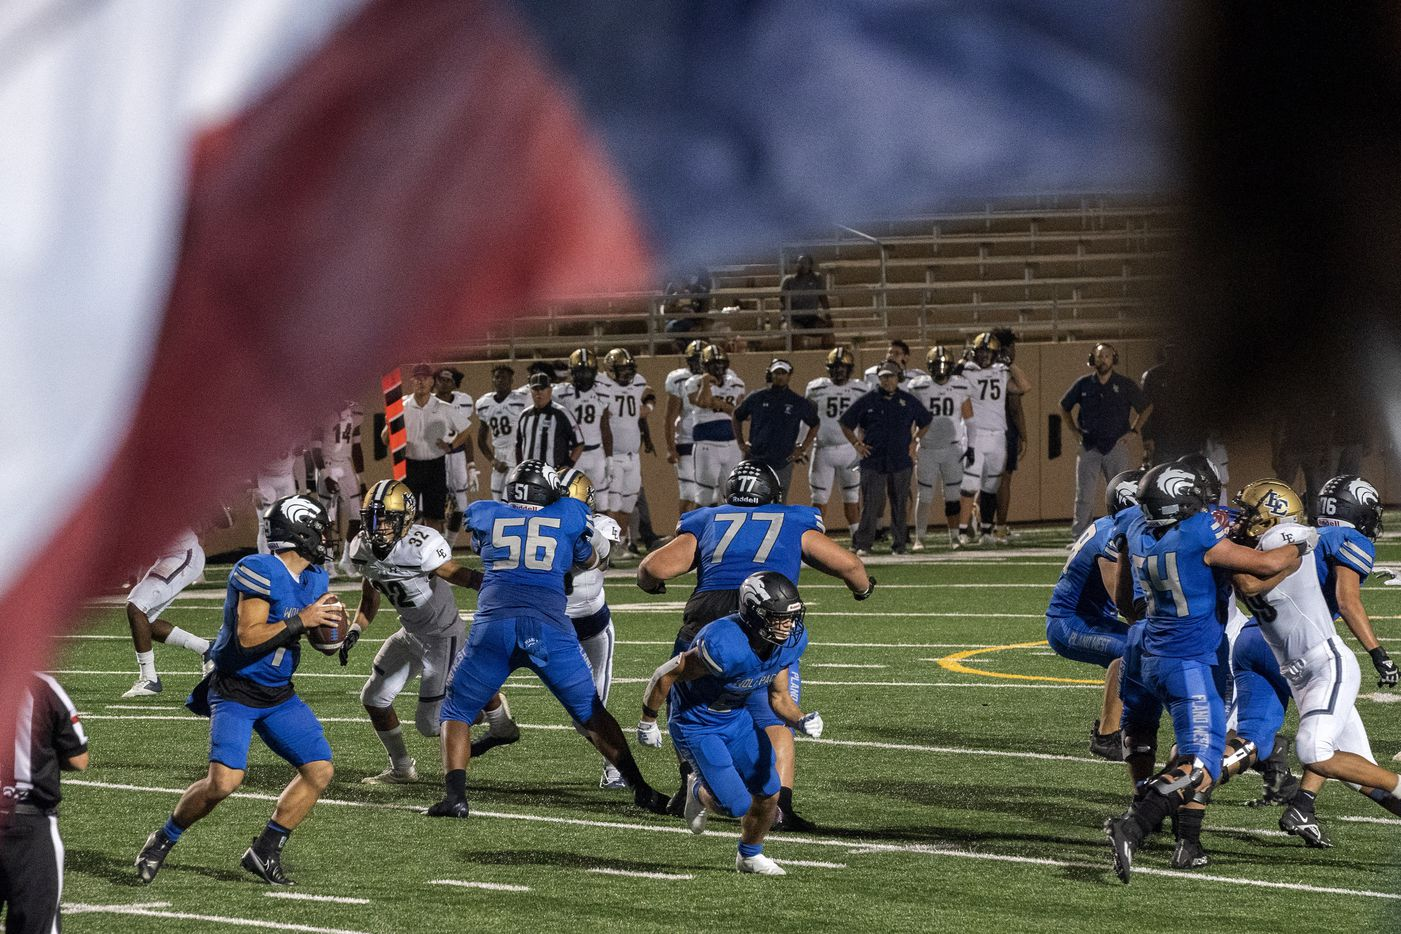 Plano West junior quarterback Vance Feuerbacher (19) drops back to pass against Little Elm during the second half of a high school football game on Friday, Sept. 10, 2021 at John Clark Stadium in Plano, Texas. Little Elm won 35-31. (Jeffrey McWhorter/Special Contributor)